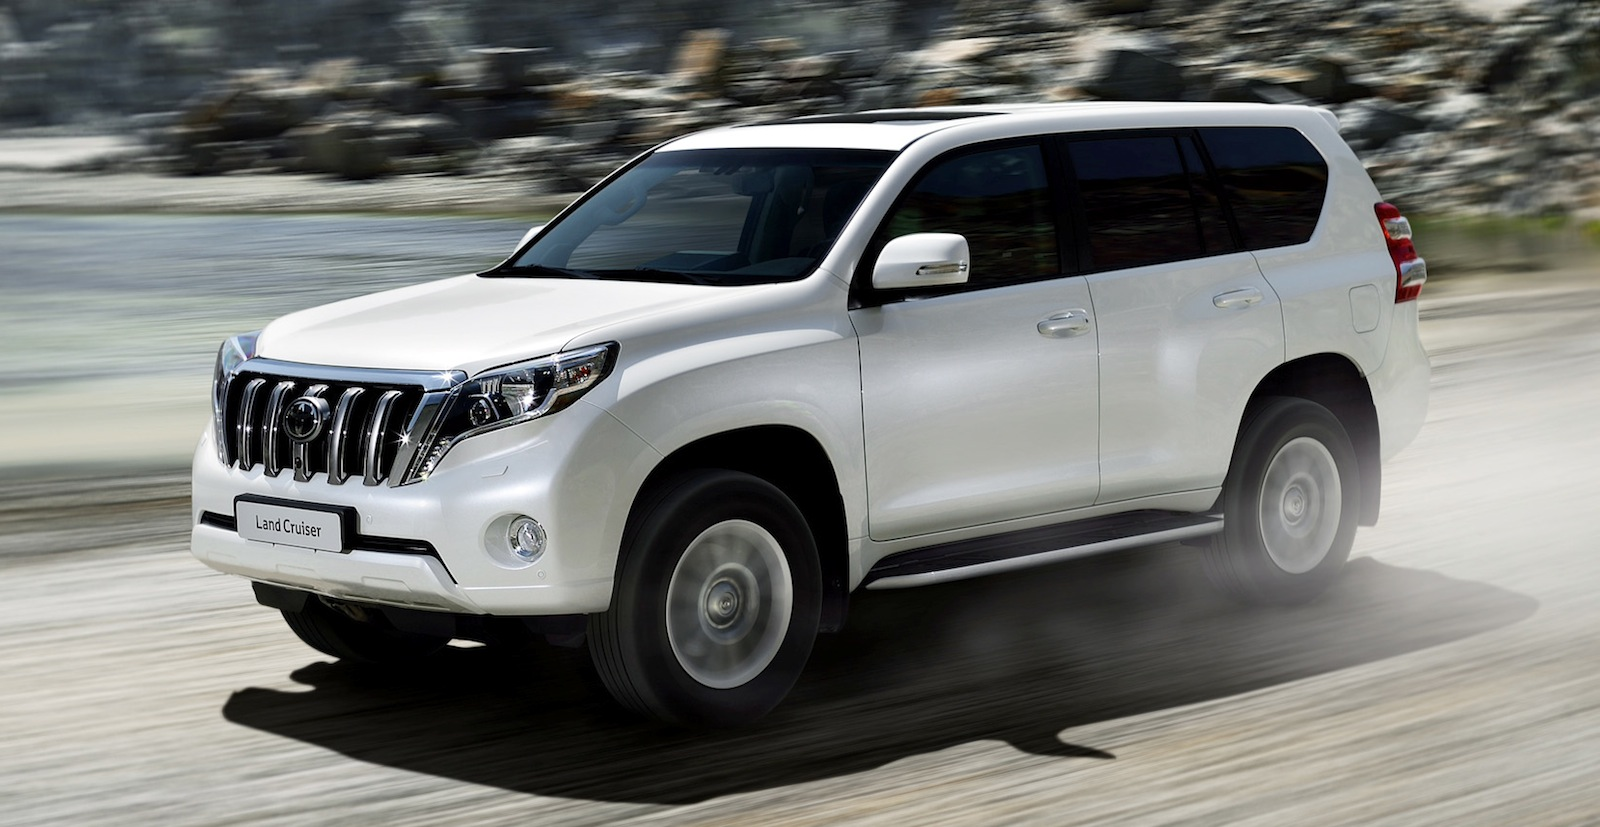 Toyota prado is perhaps the most popular suv in the country though land cruiser ii version in 90s was also badged prado in japan the 1st generation 95